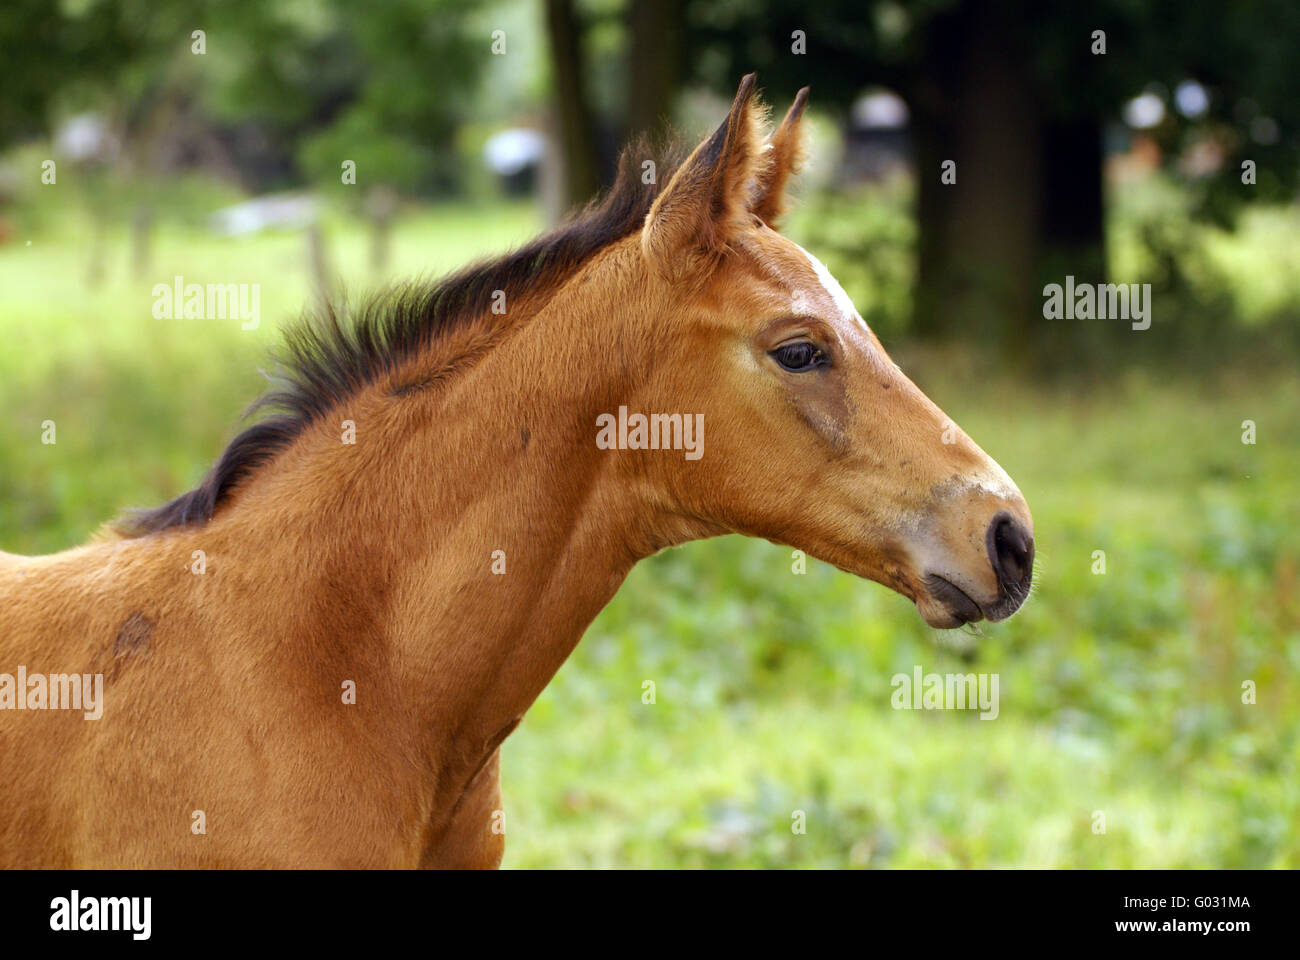 Foal head study Stock Photo